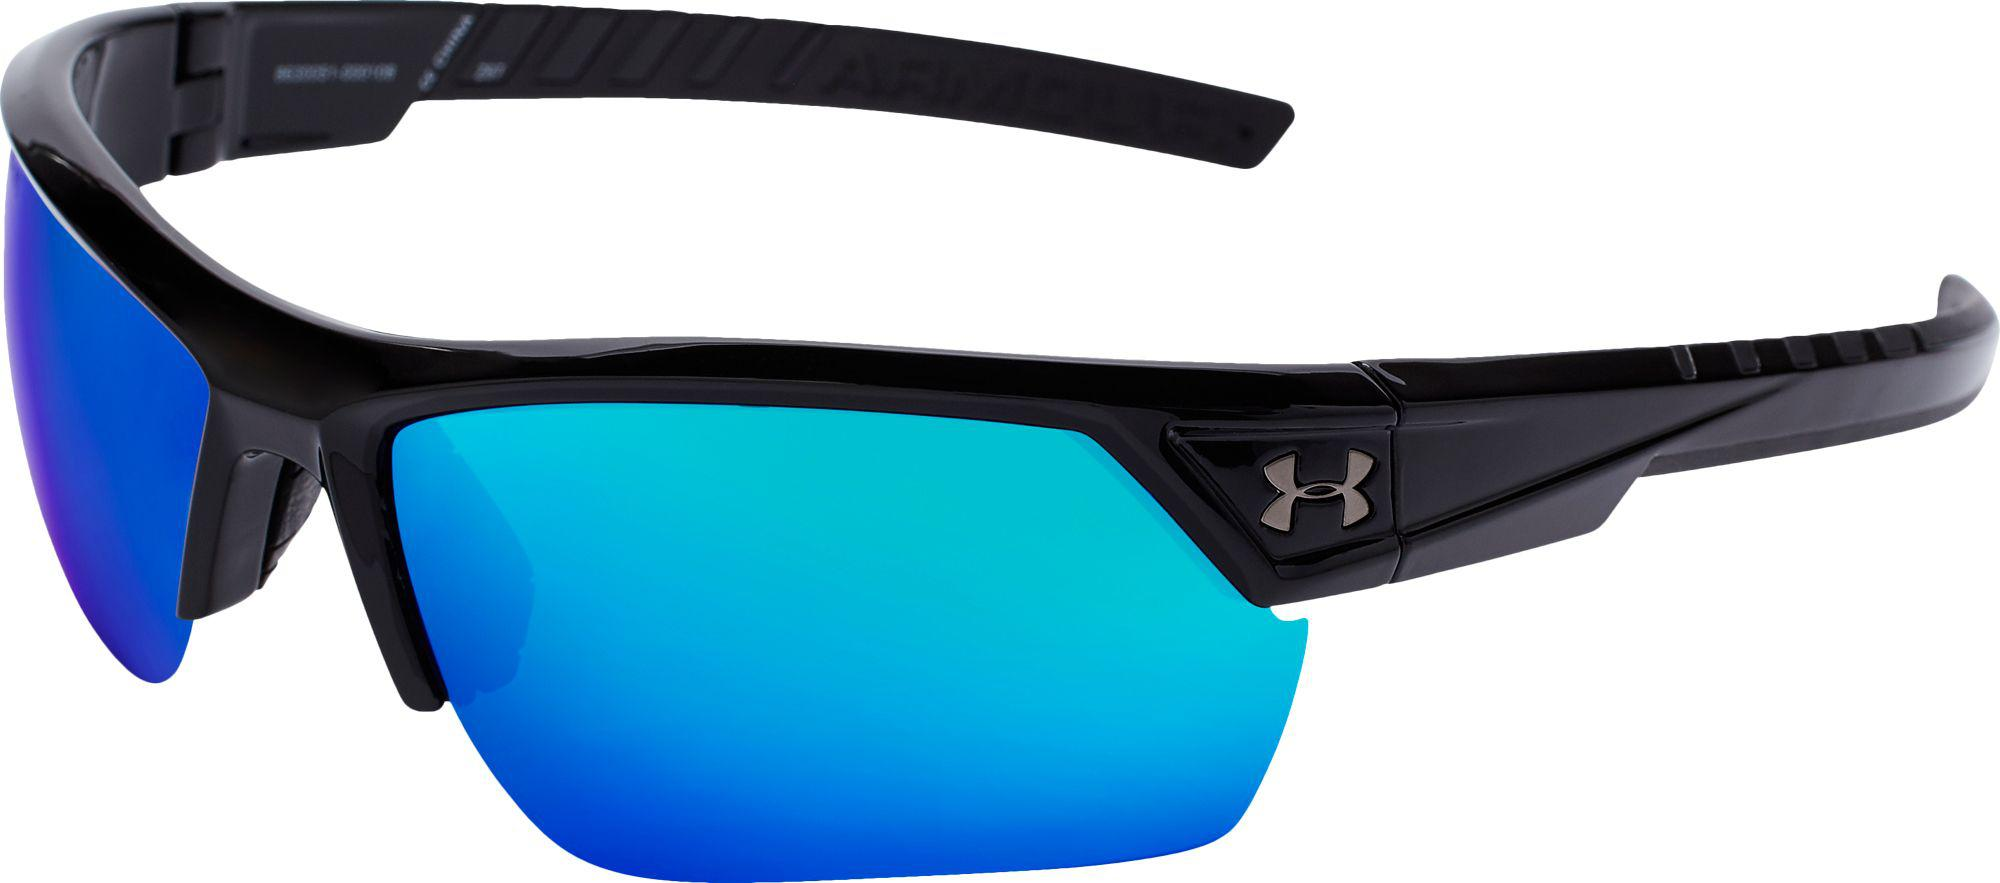 4aa920a359 Under Armour - Black Igniter 2.0 Storm Polarized Sunglasses for Men - Lyst